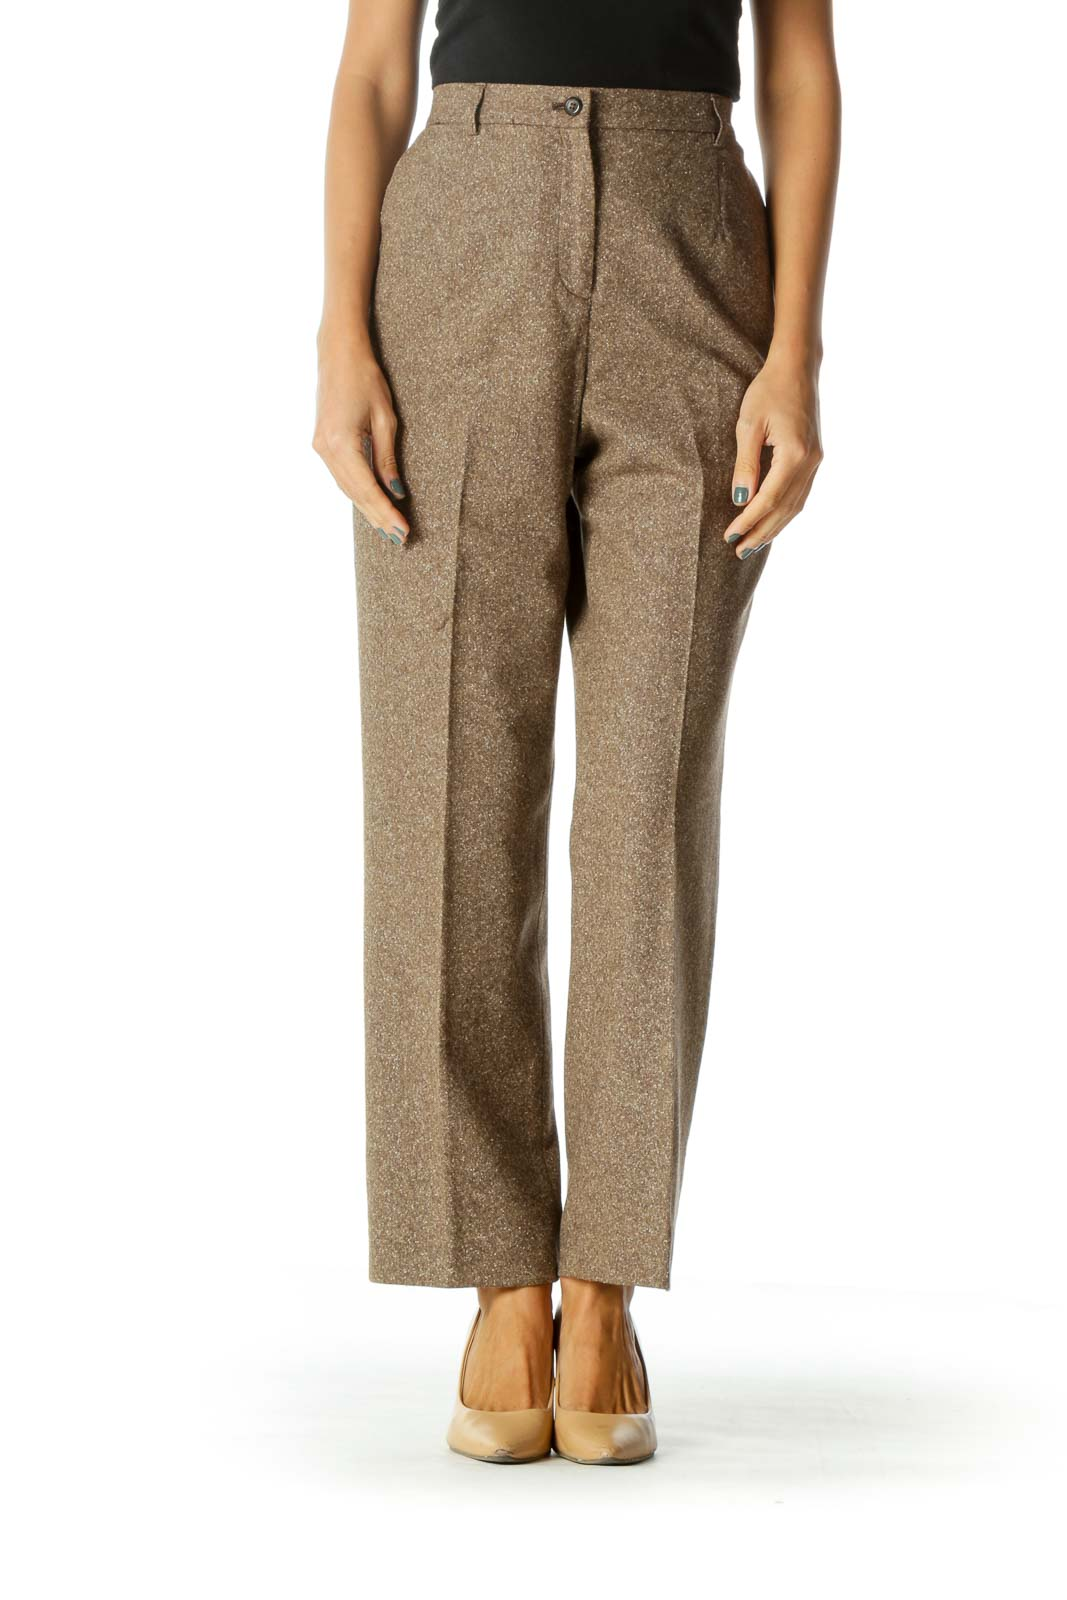 Brown Beige White Wool Silk Blend Textured Pocketed Pants Front